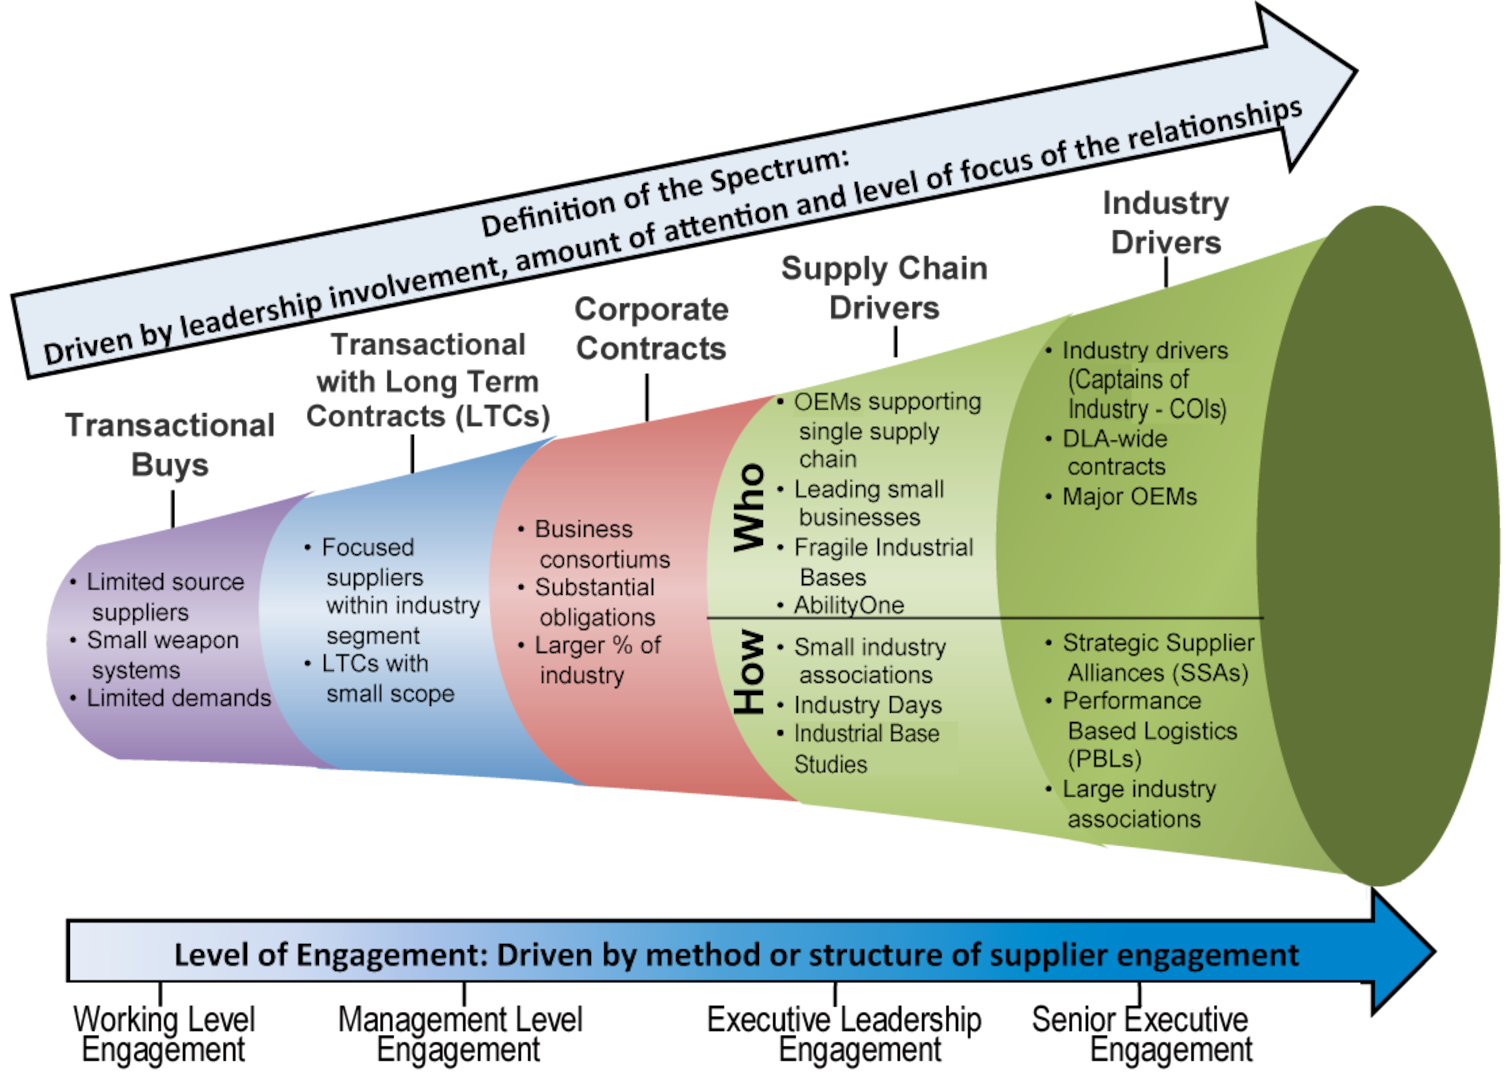 a graphic of a cone depicting the Supplier Engagement Spectrum